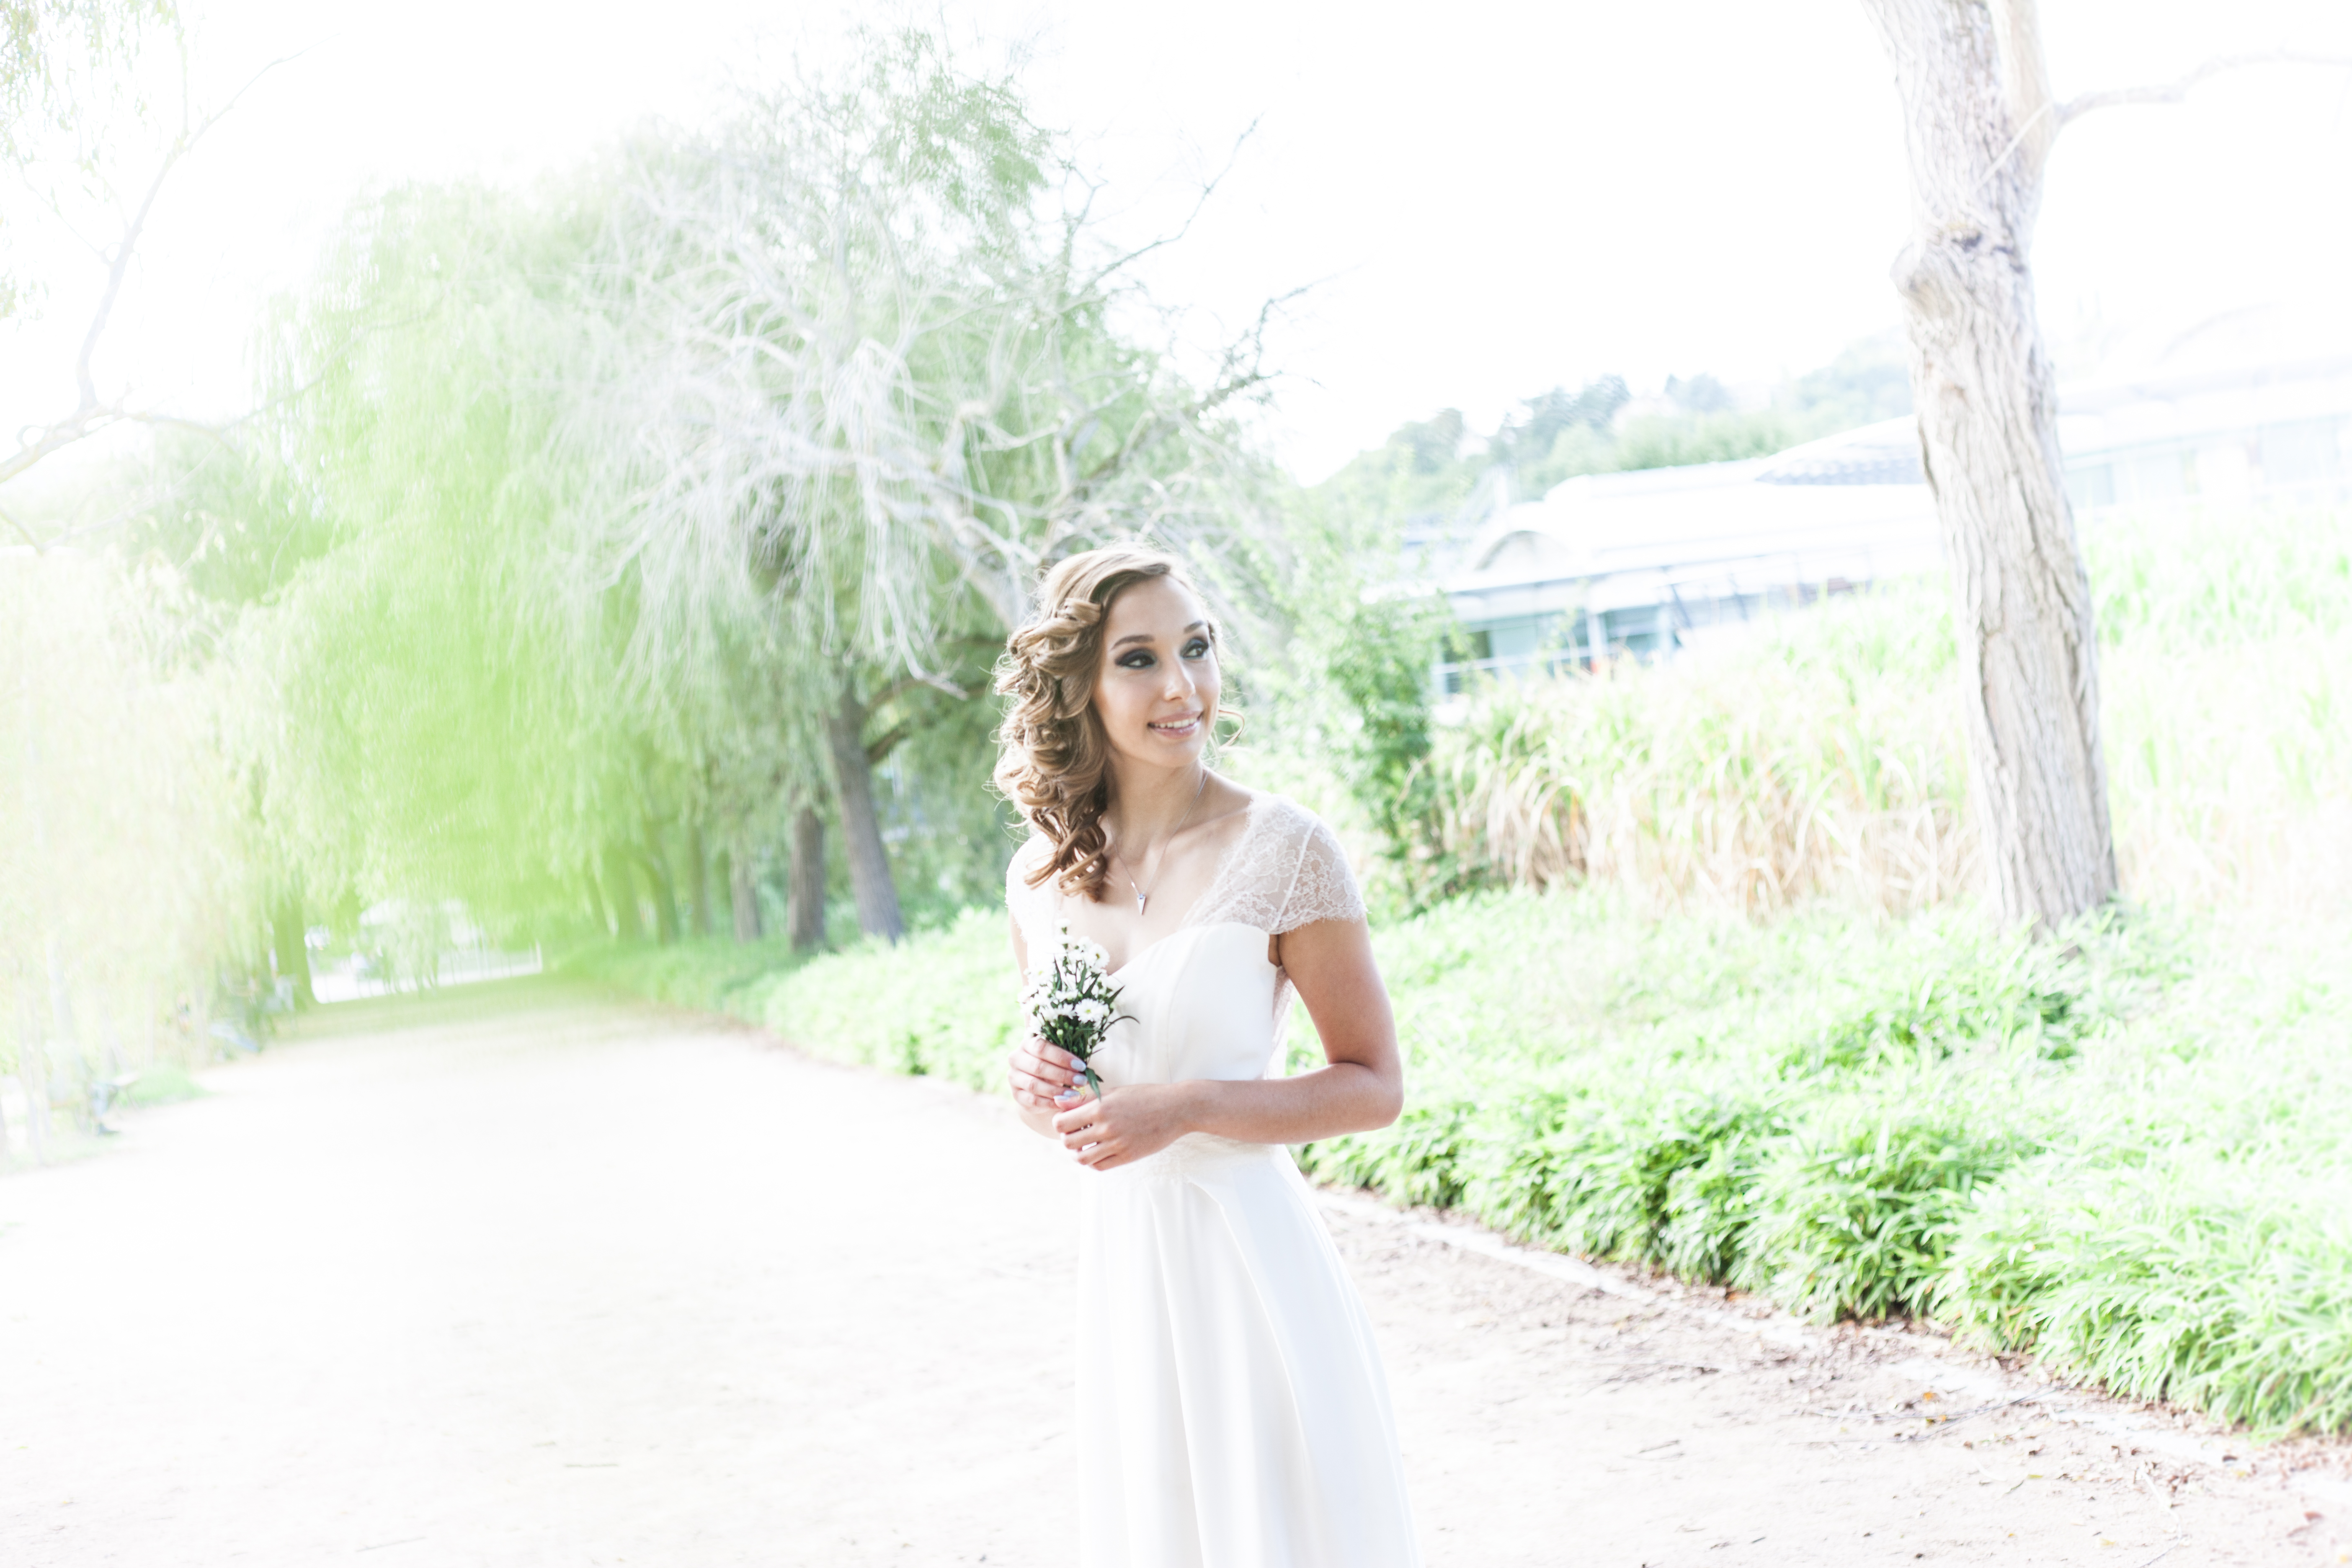 Mariage By Anna Cruz Photo